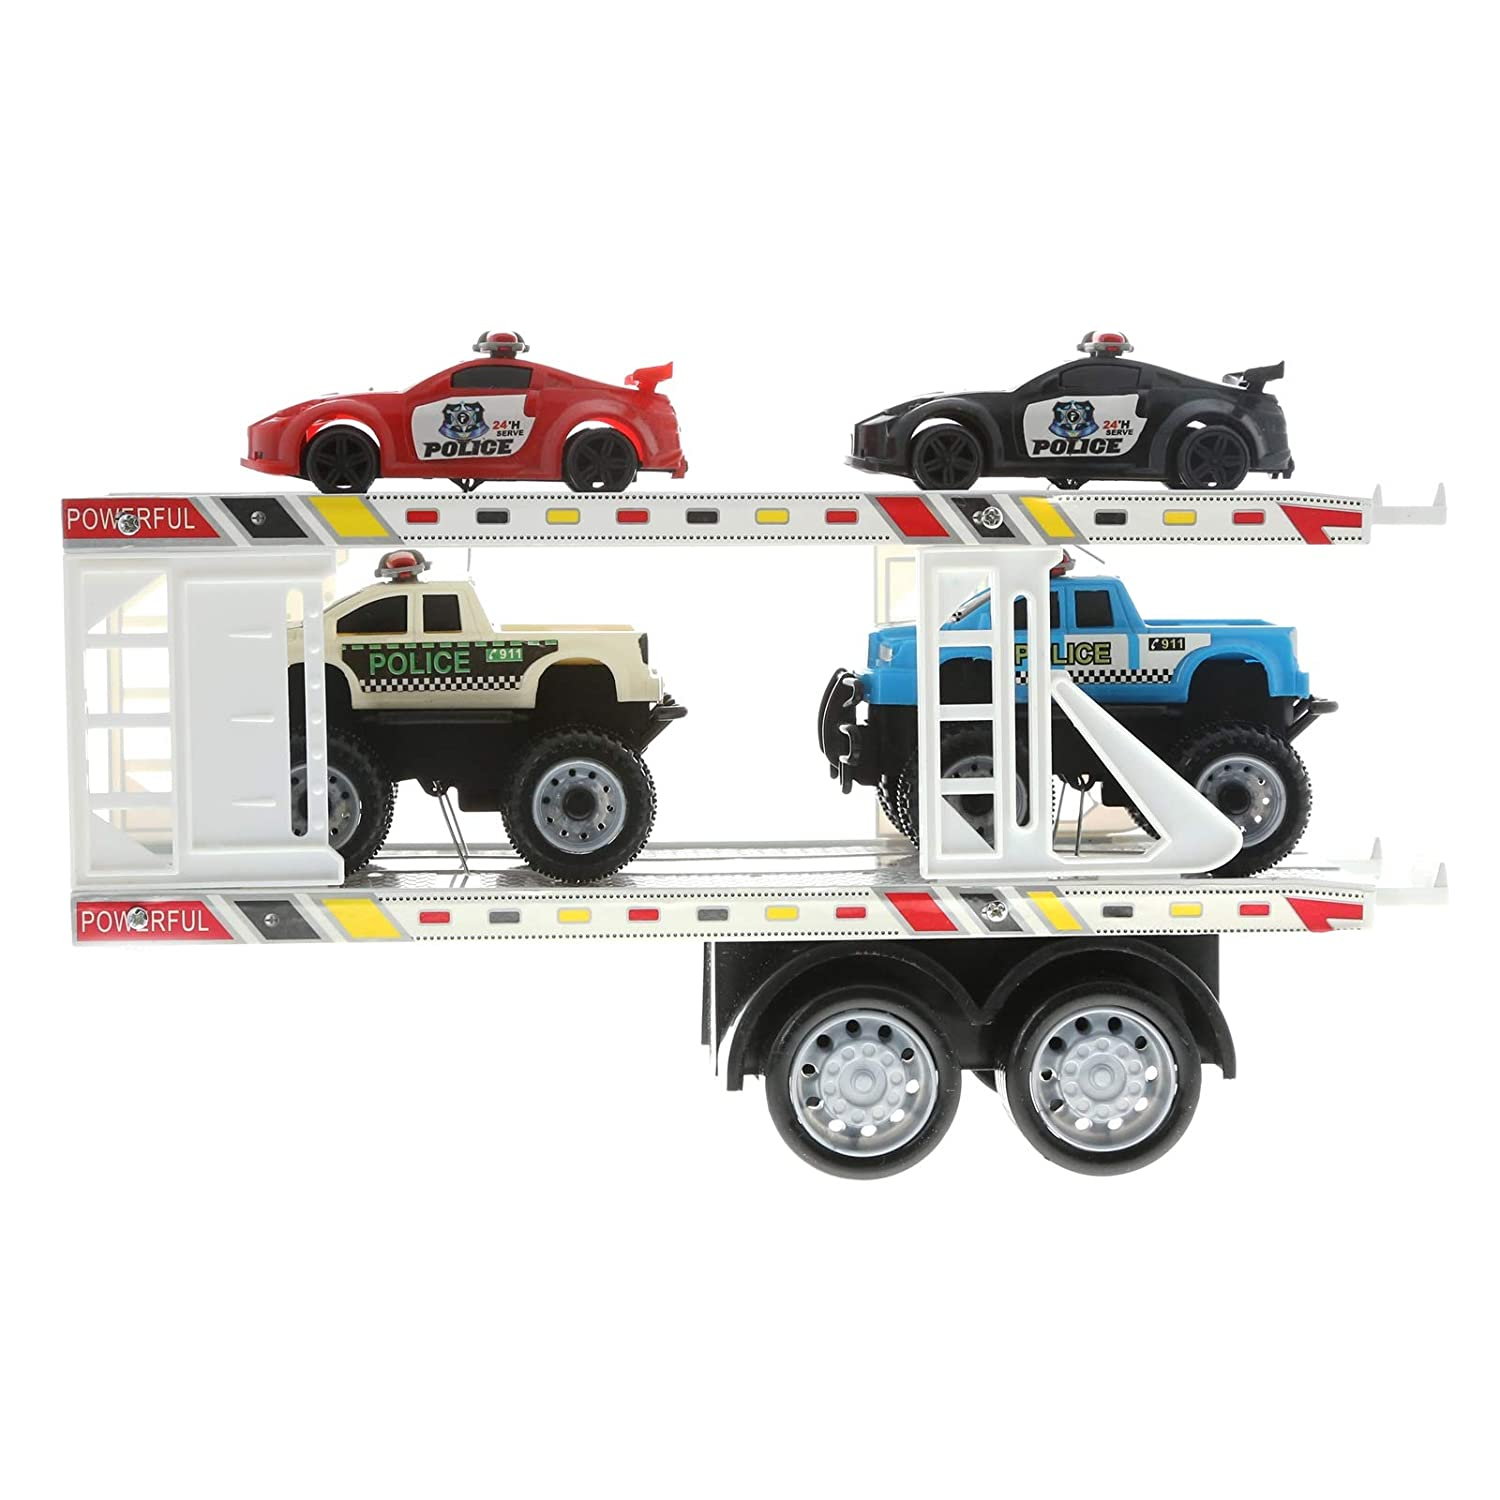 High PoweROT Truck  Strong Power Truck 4 Series Auto Carrier W 4 Truck Cars Toy for Kids (Farbes May Vary) by MK Trading 25879e